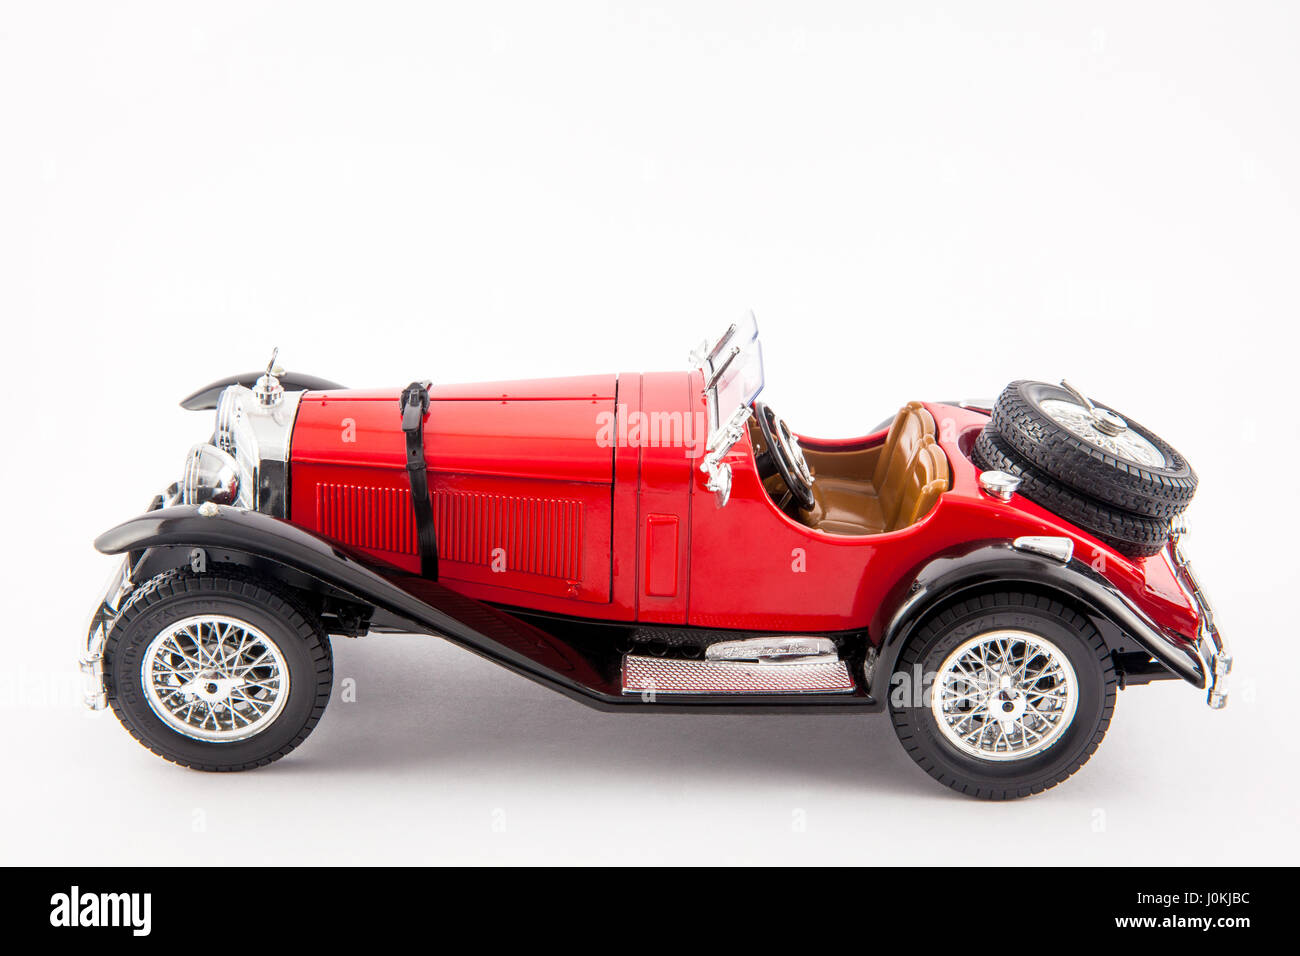 Mercedes Benz Red Classic Car Isolated In White Background